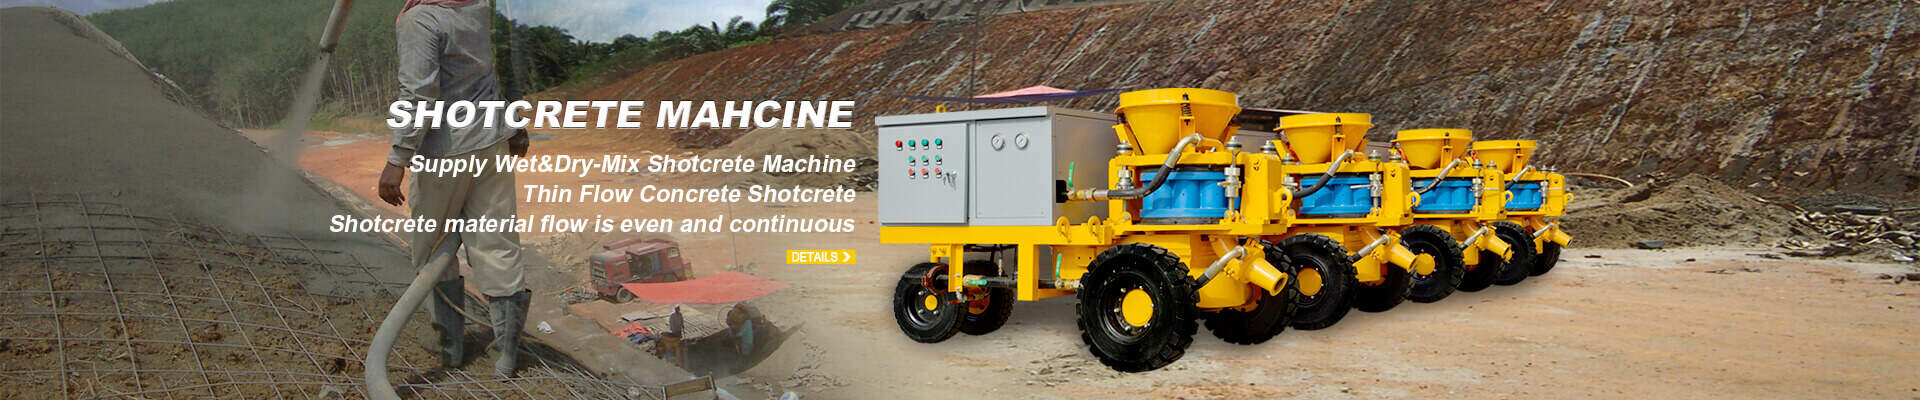 shotcrete machine,gunite machine,dry-mix shotcrete machine,concrete spray machine,shotcrete pump shotcrete equipment wet shotcrete machine concrete spraying machine